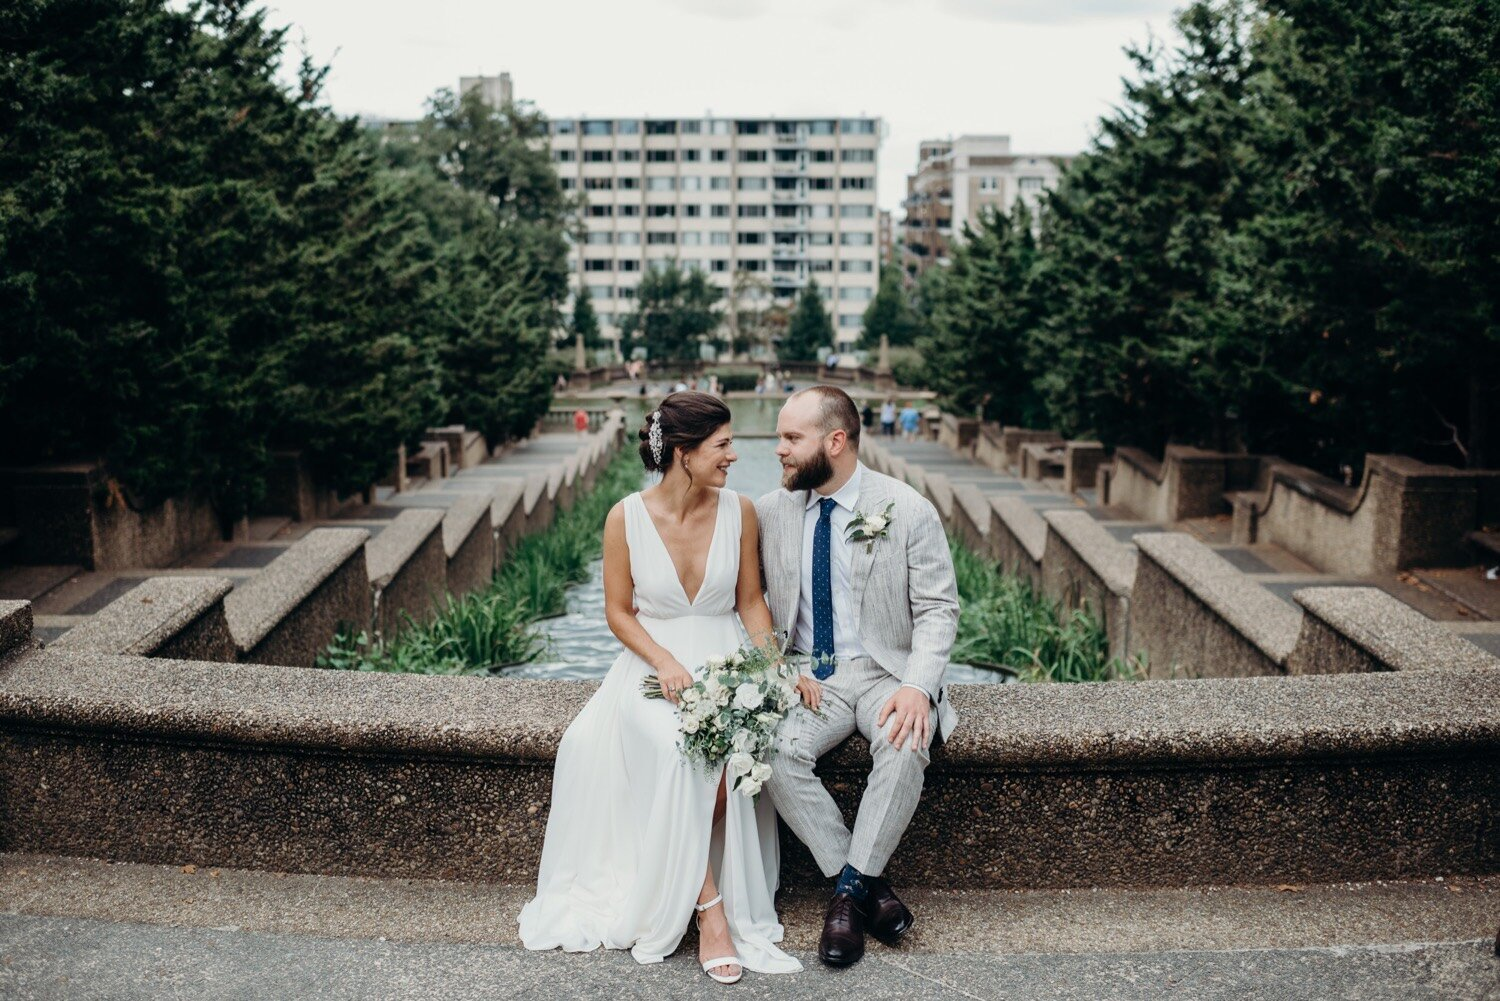 26_wedding_photographer_meridian_park_urban_dc_washington_hill.jpg